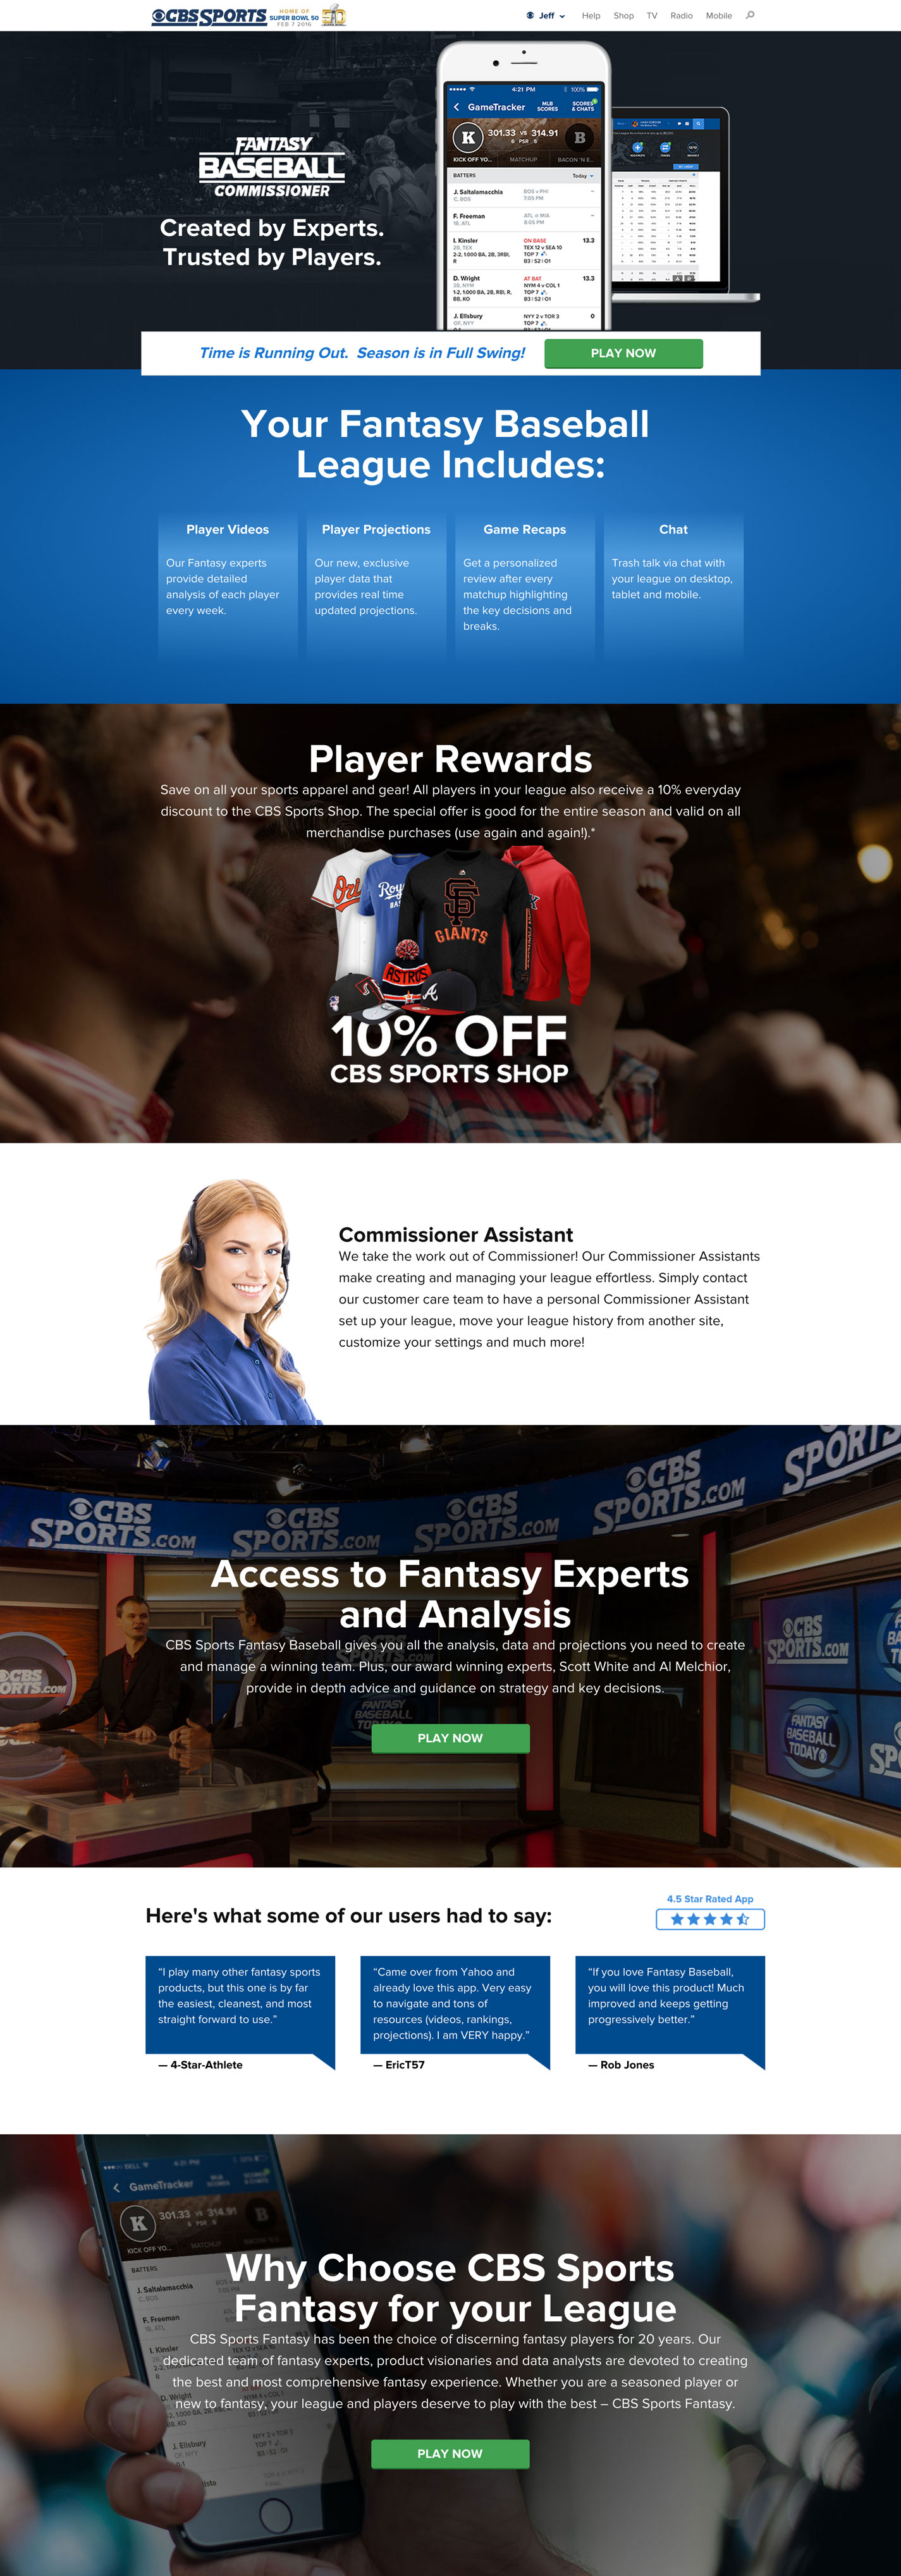 Landing Page design for a Fantasy Sports brand.